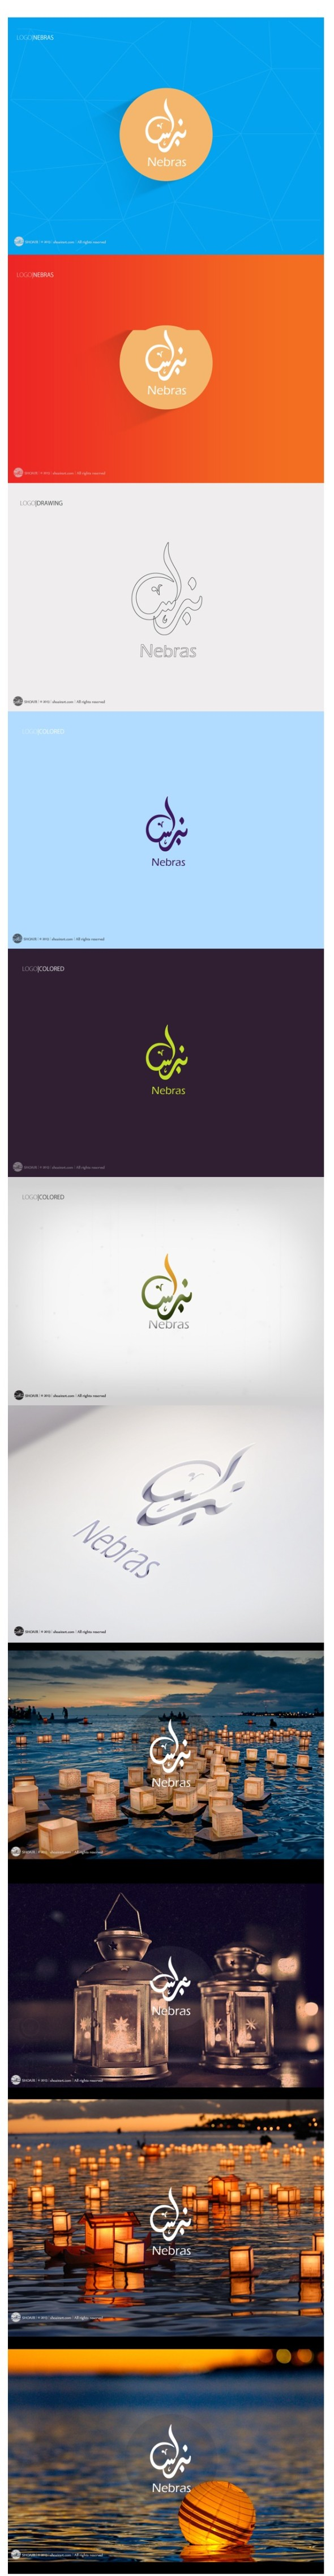 NEBRAS Arabic logo on Behance